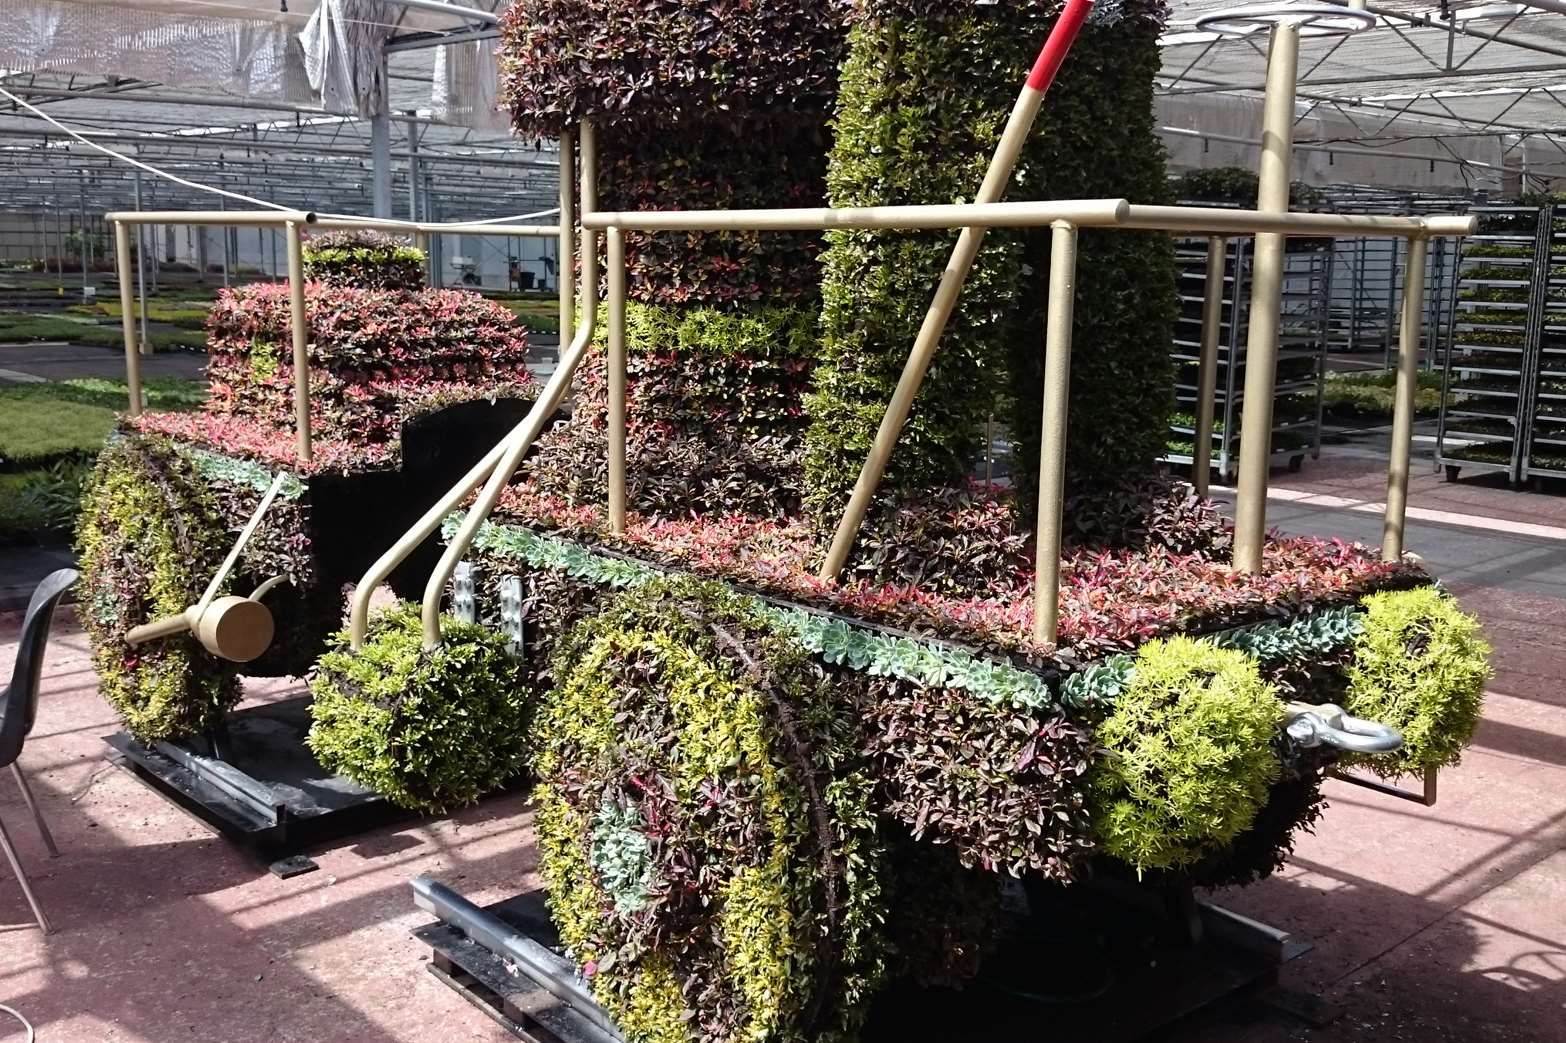 The Coffee Pot Train floral installation will be moved to the car park later this week